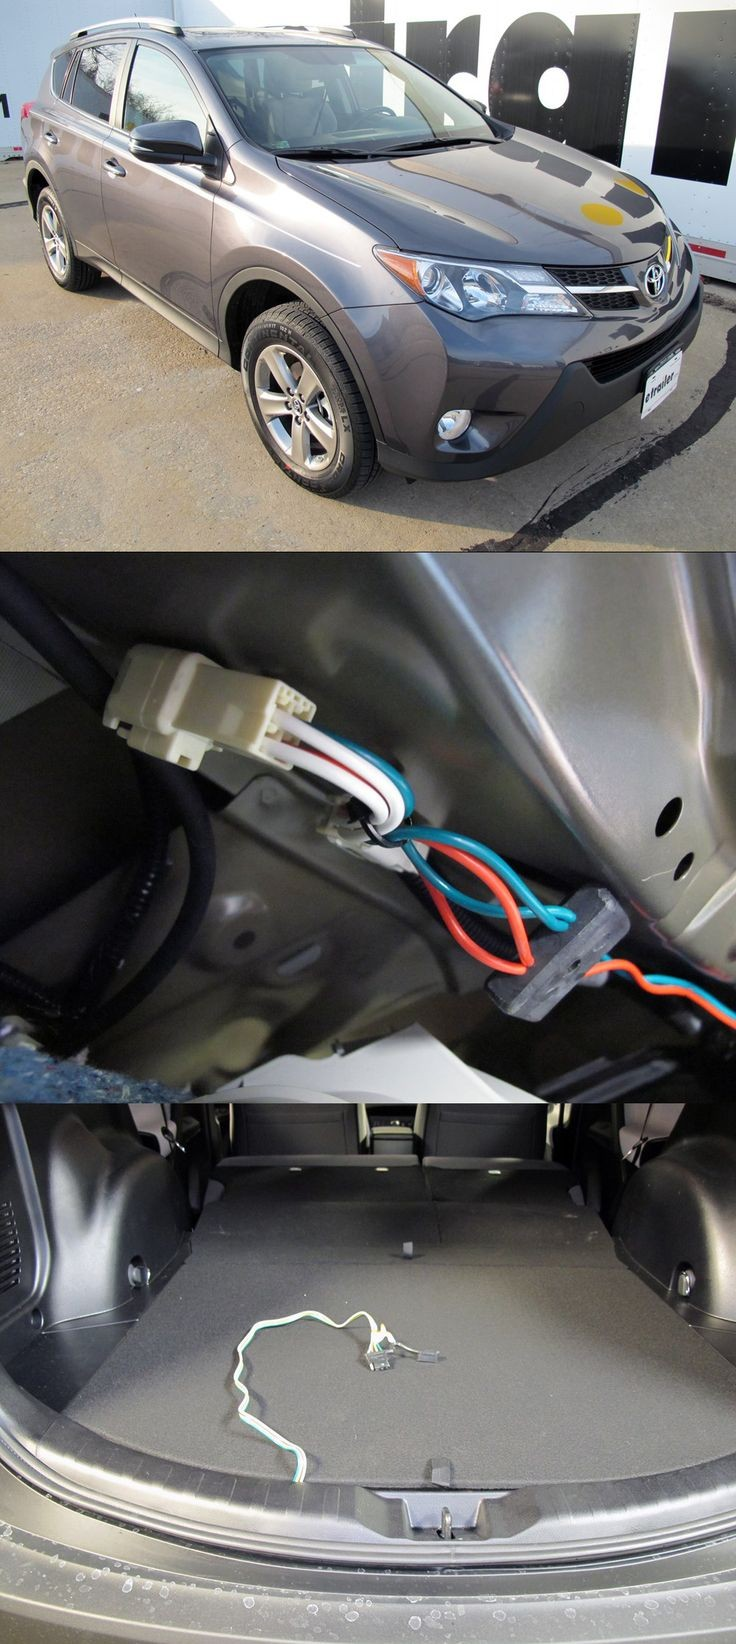 T e Vehicle Wiring Harness with 4 Pole Flat Trailer Connector